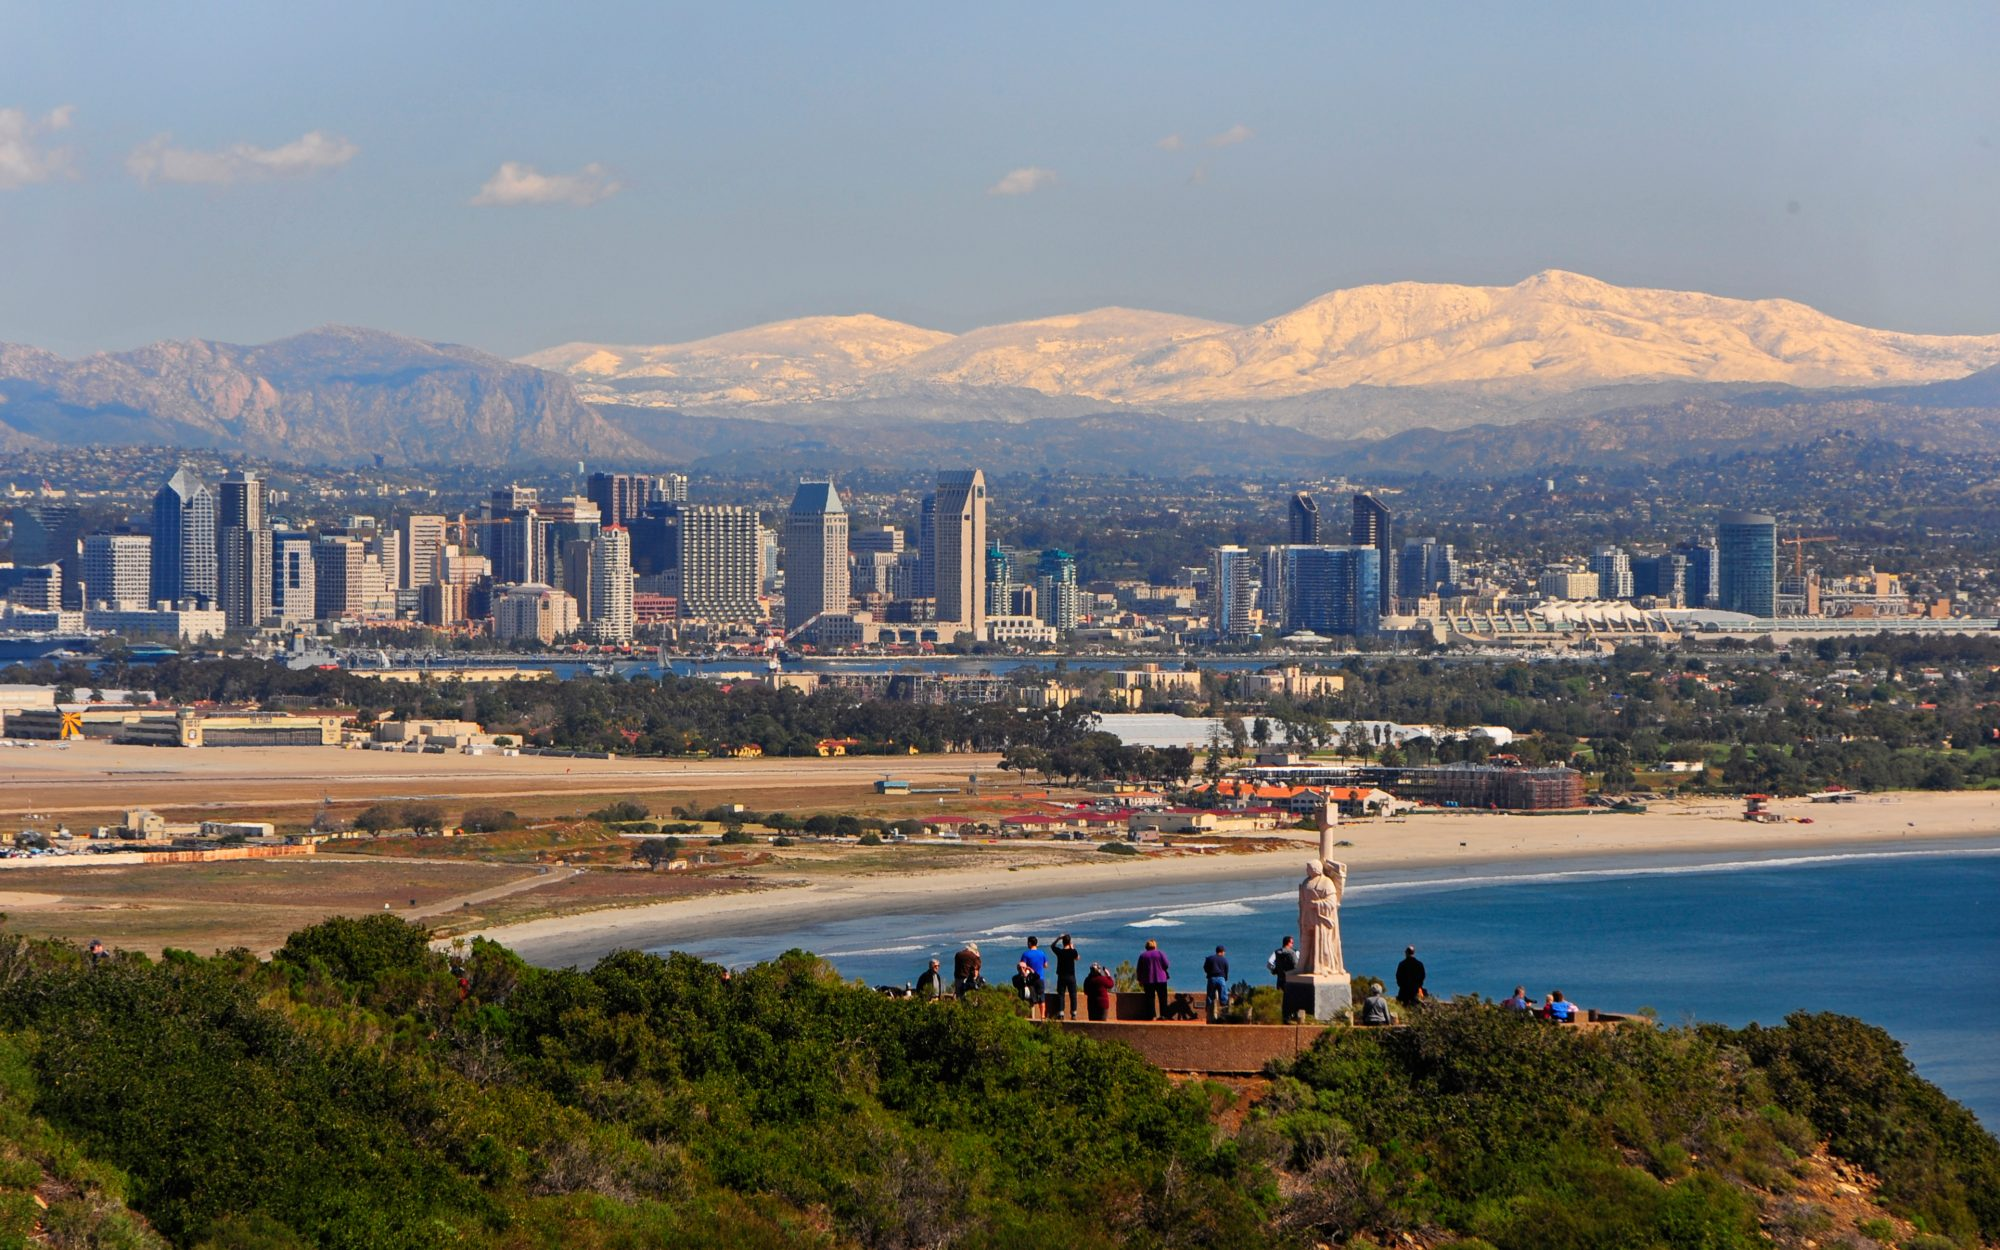 America's Most Romantic Cities: No. 5 San Diego